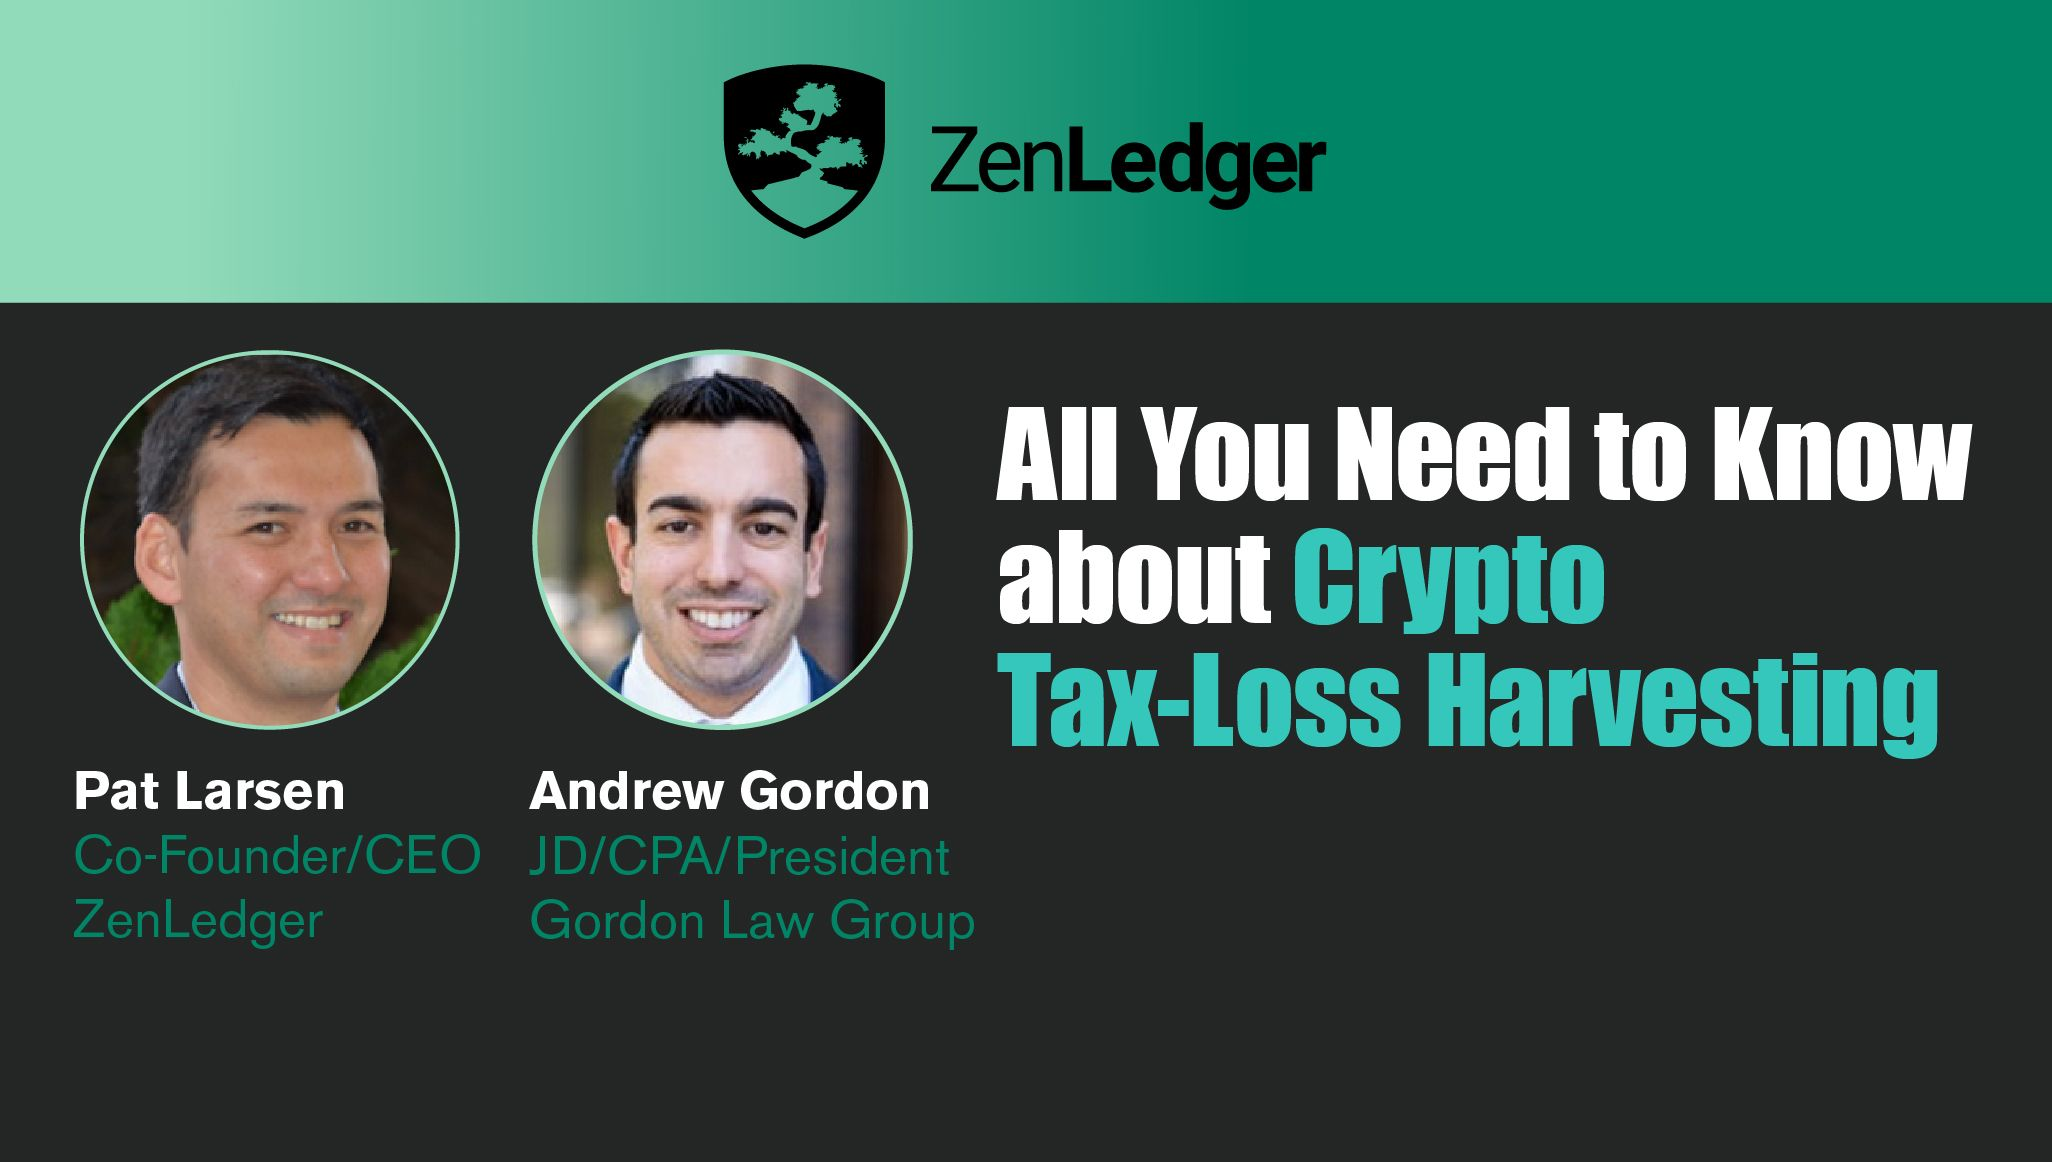 All You Need to Know About Crypto Tax-Loss Harvesting Webinar